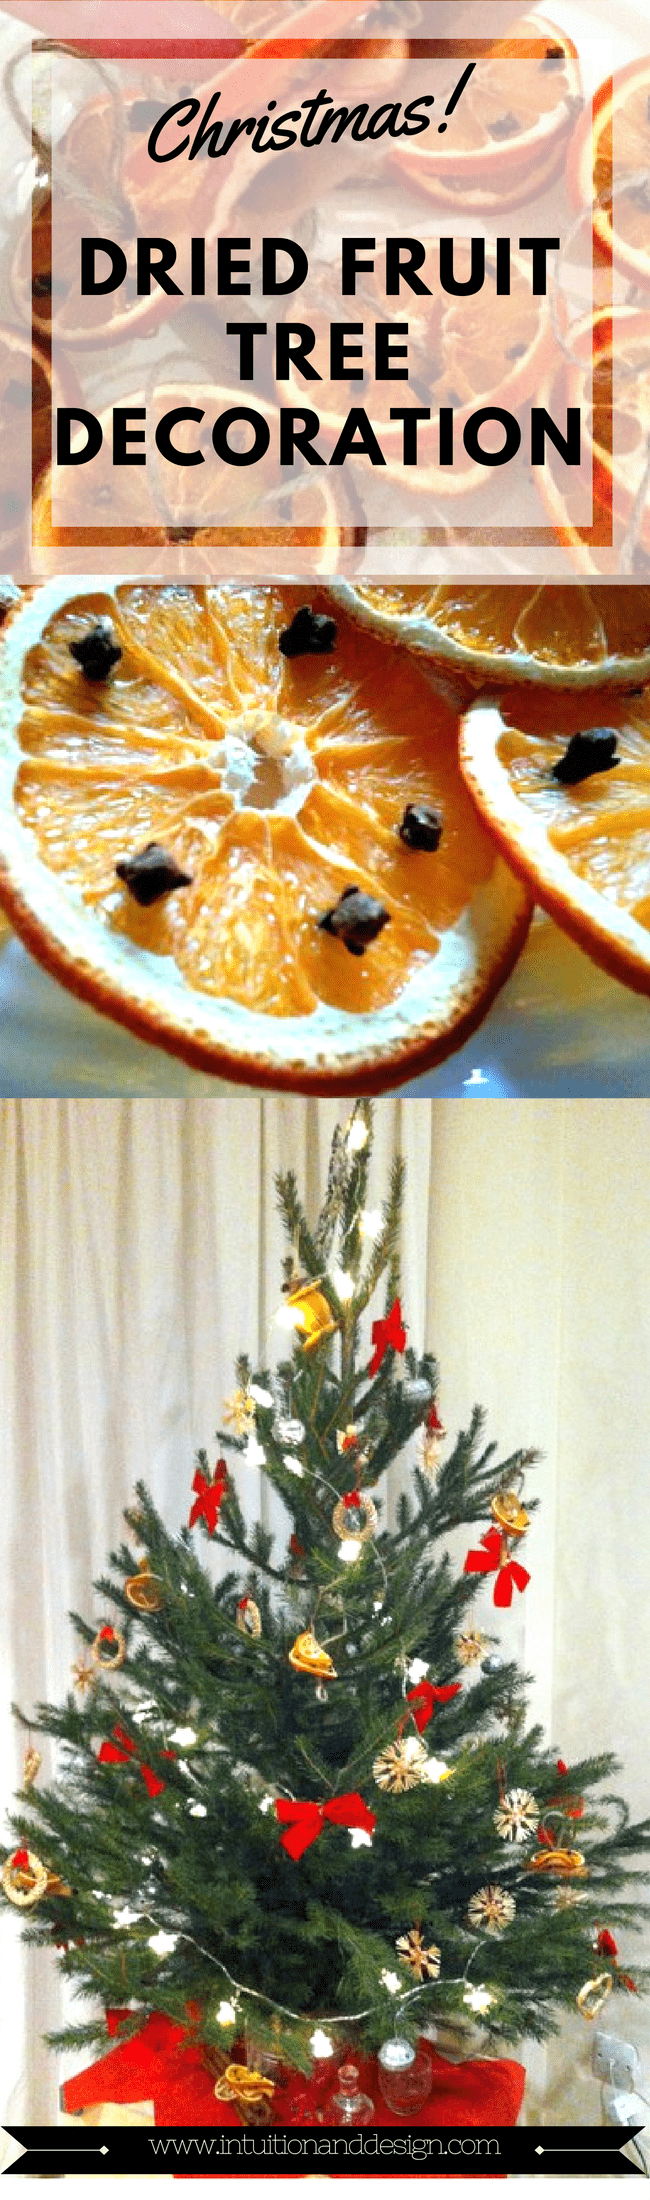 Homemade Dried Fruit Christmas Tree Decoration